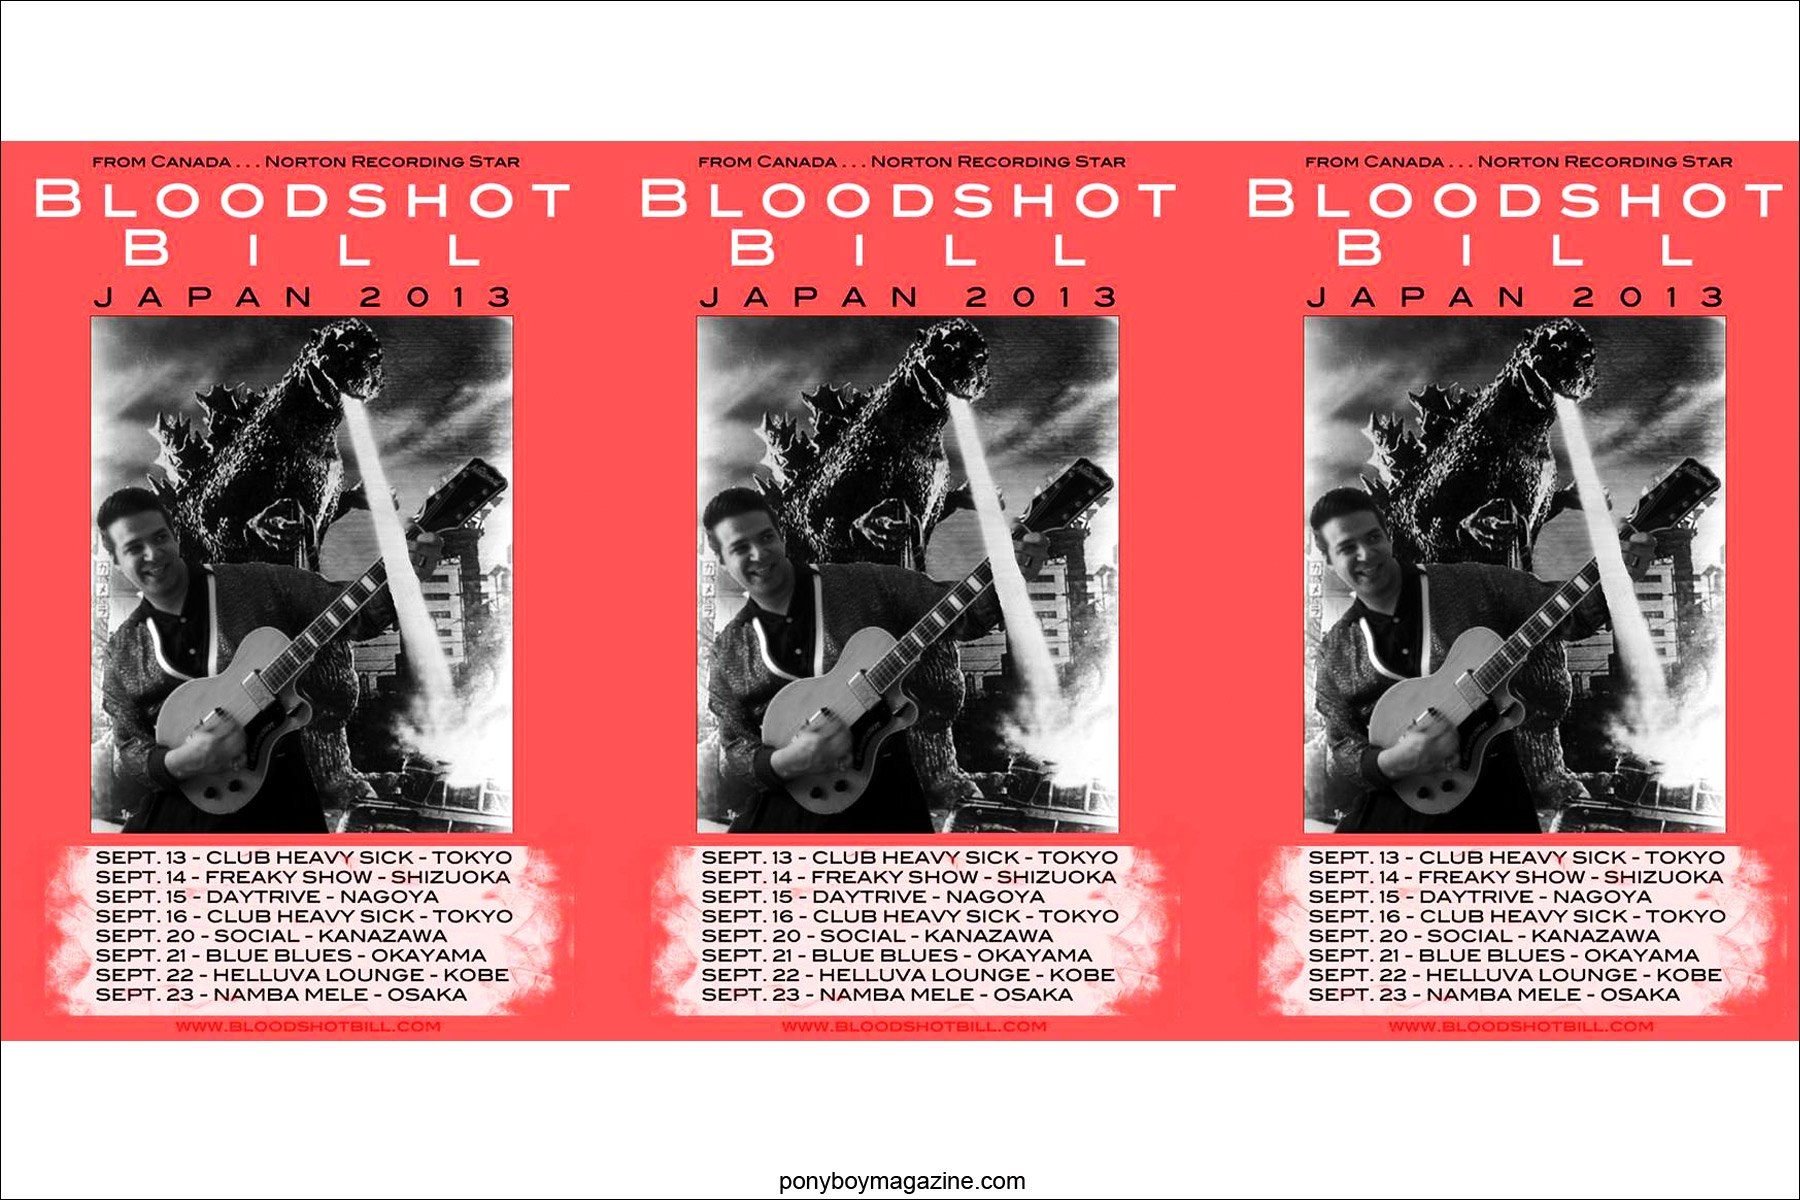 Repeat of Bloodshot Bill Japan Tour, for Ponyboy Magazine in New York City.